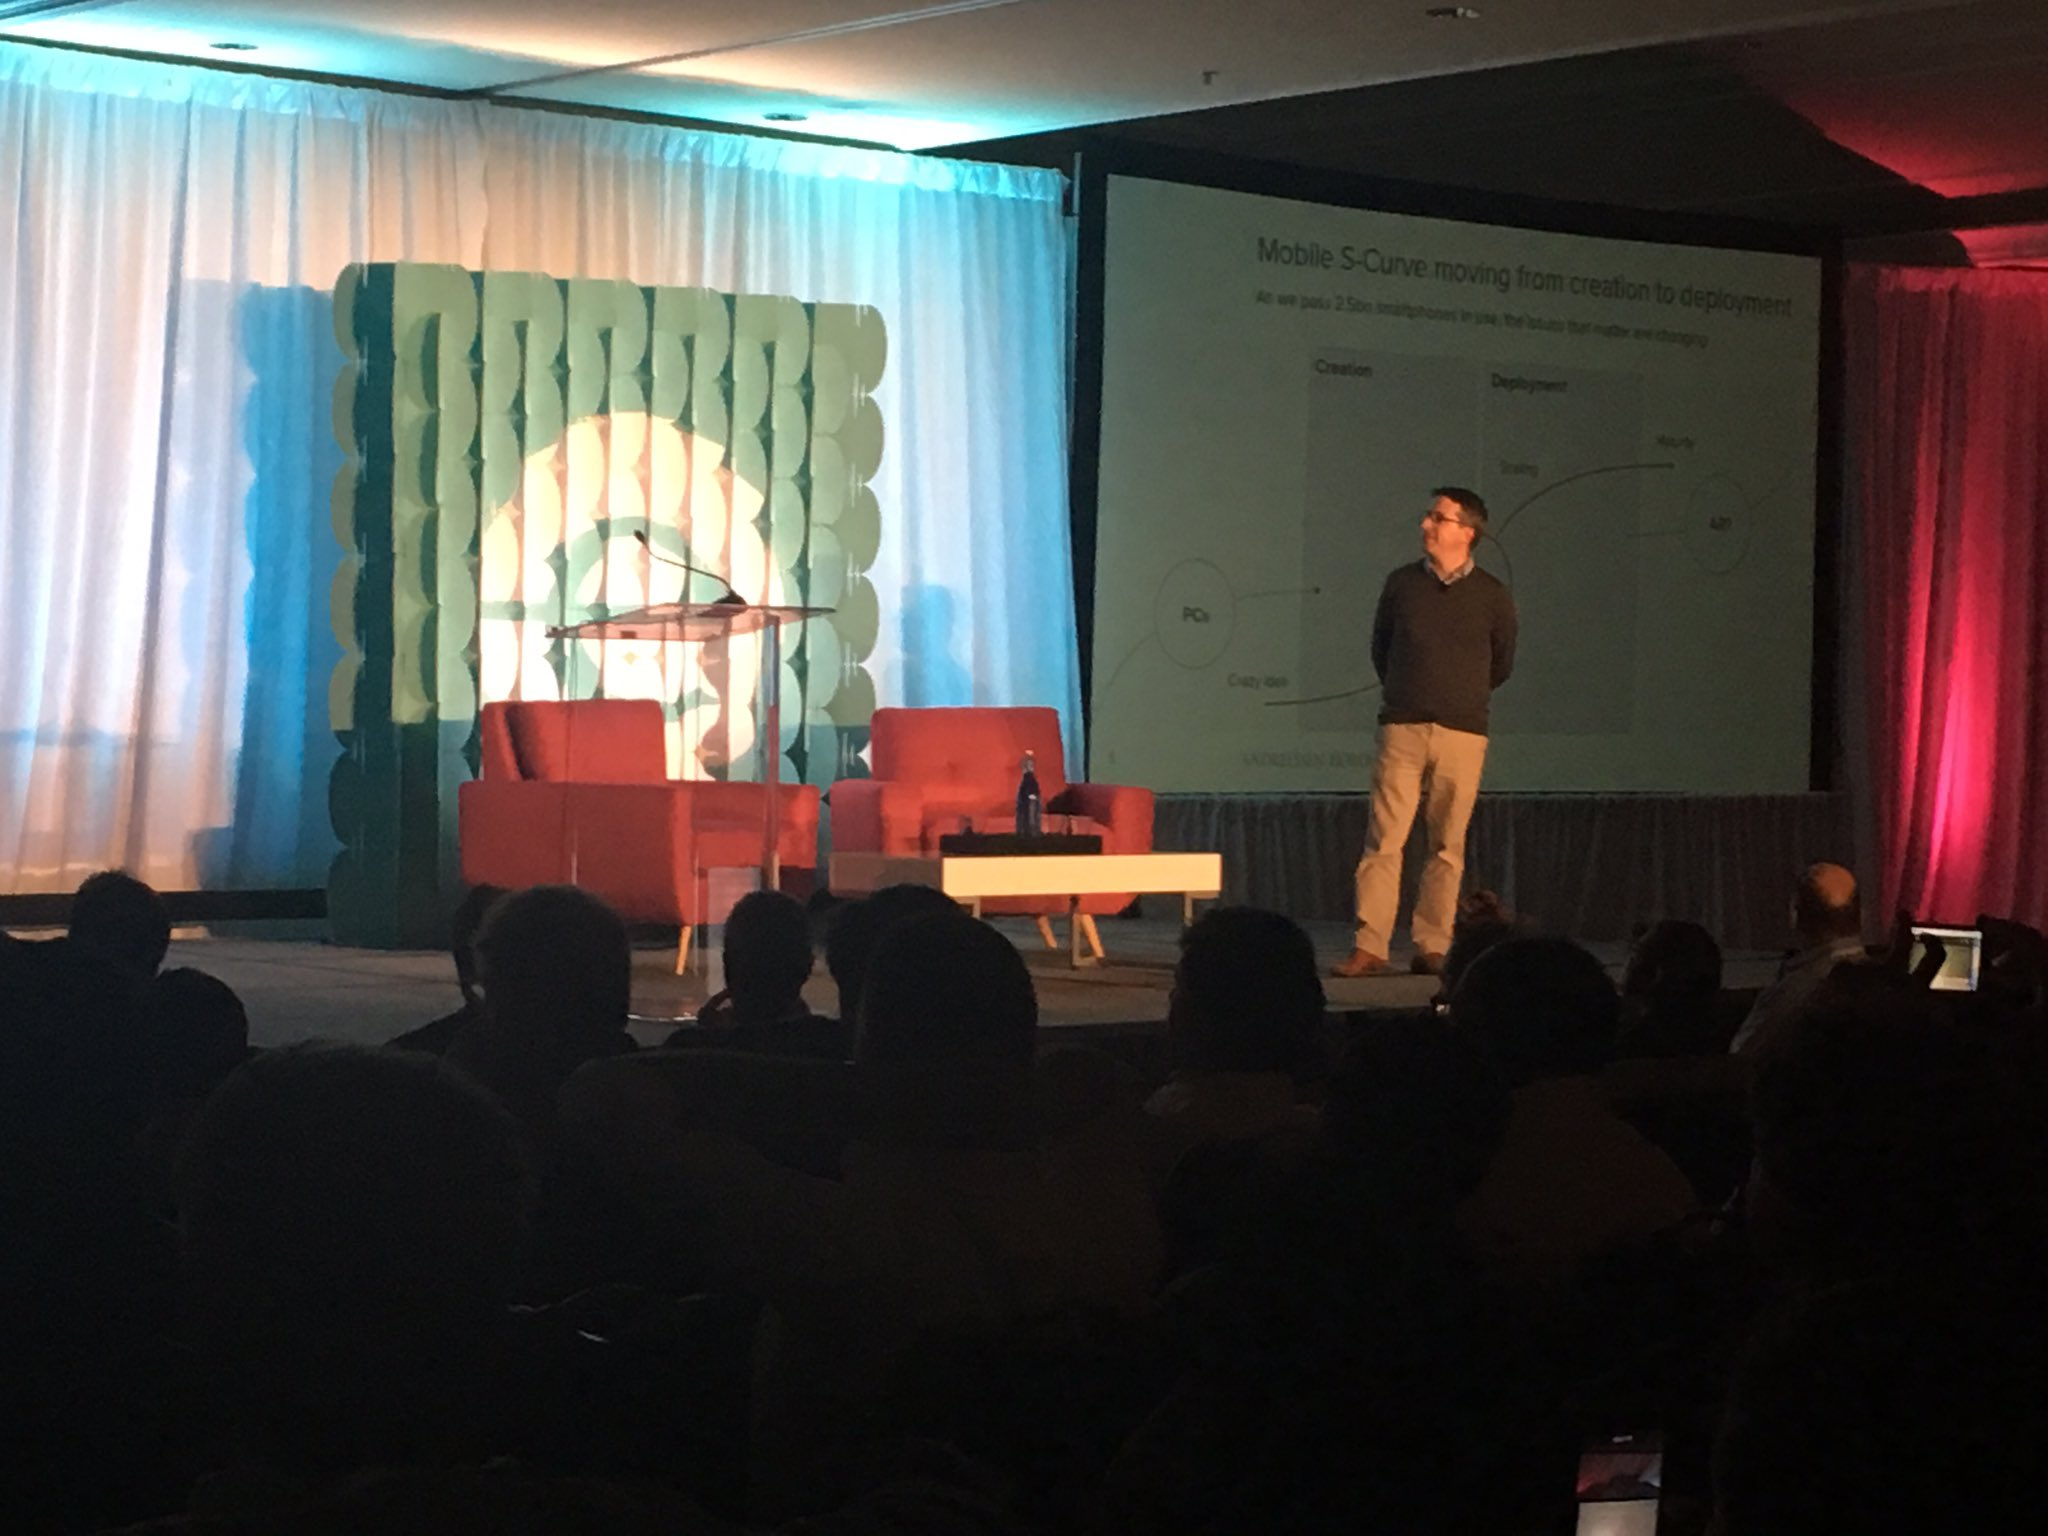 """Talking about mobile now is like talking about PCs in 2000"" - @BenedictEvans on how Mobile is Eating the World #endeavorretreat https://t.co/ZBtDkSXfD6"